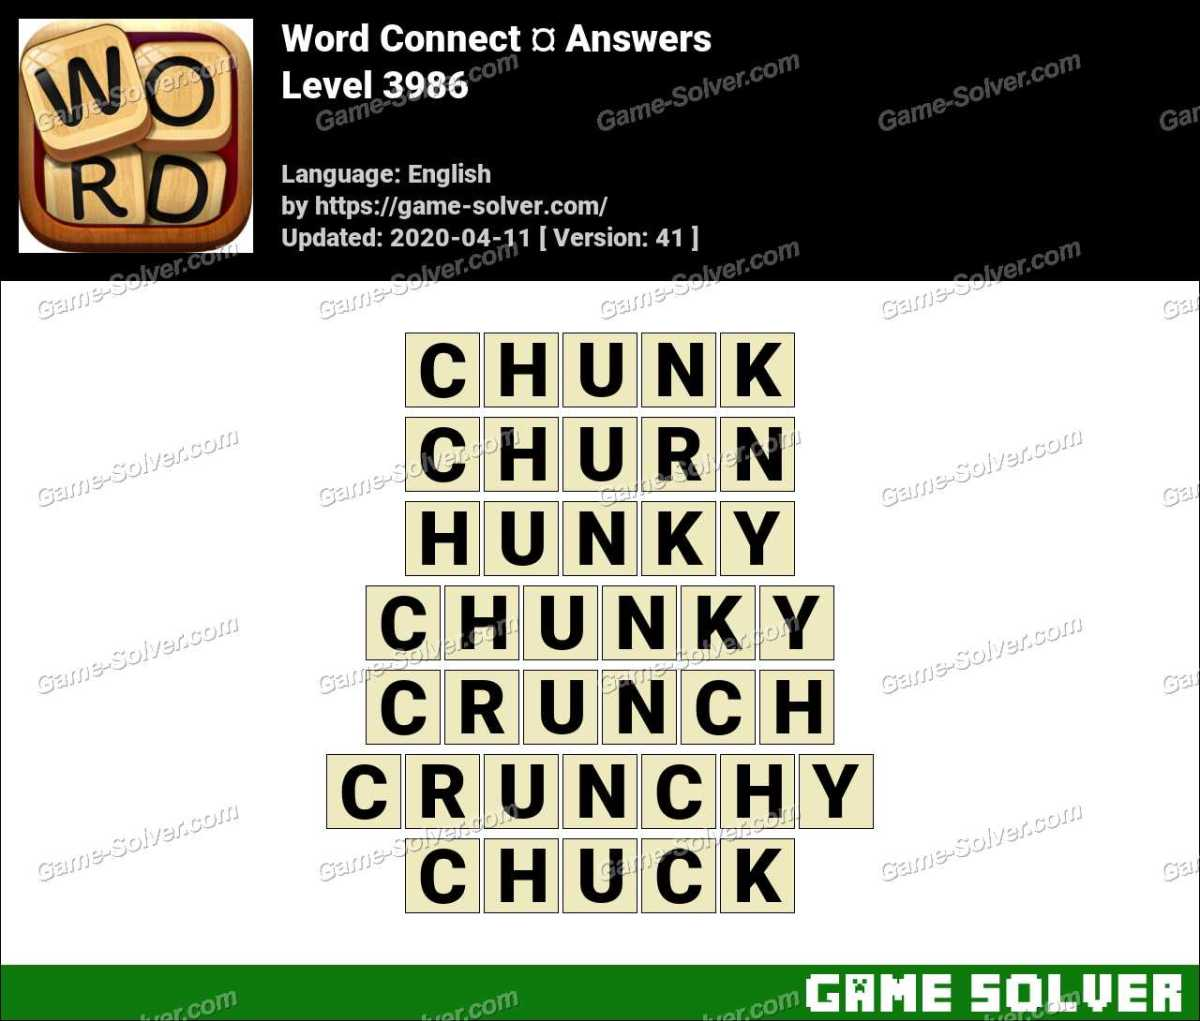 Word Connect Level 3986 Answers